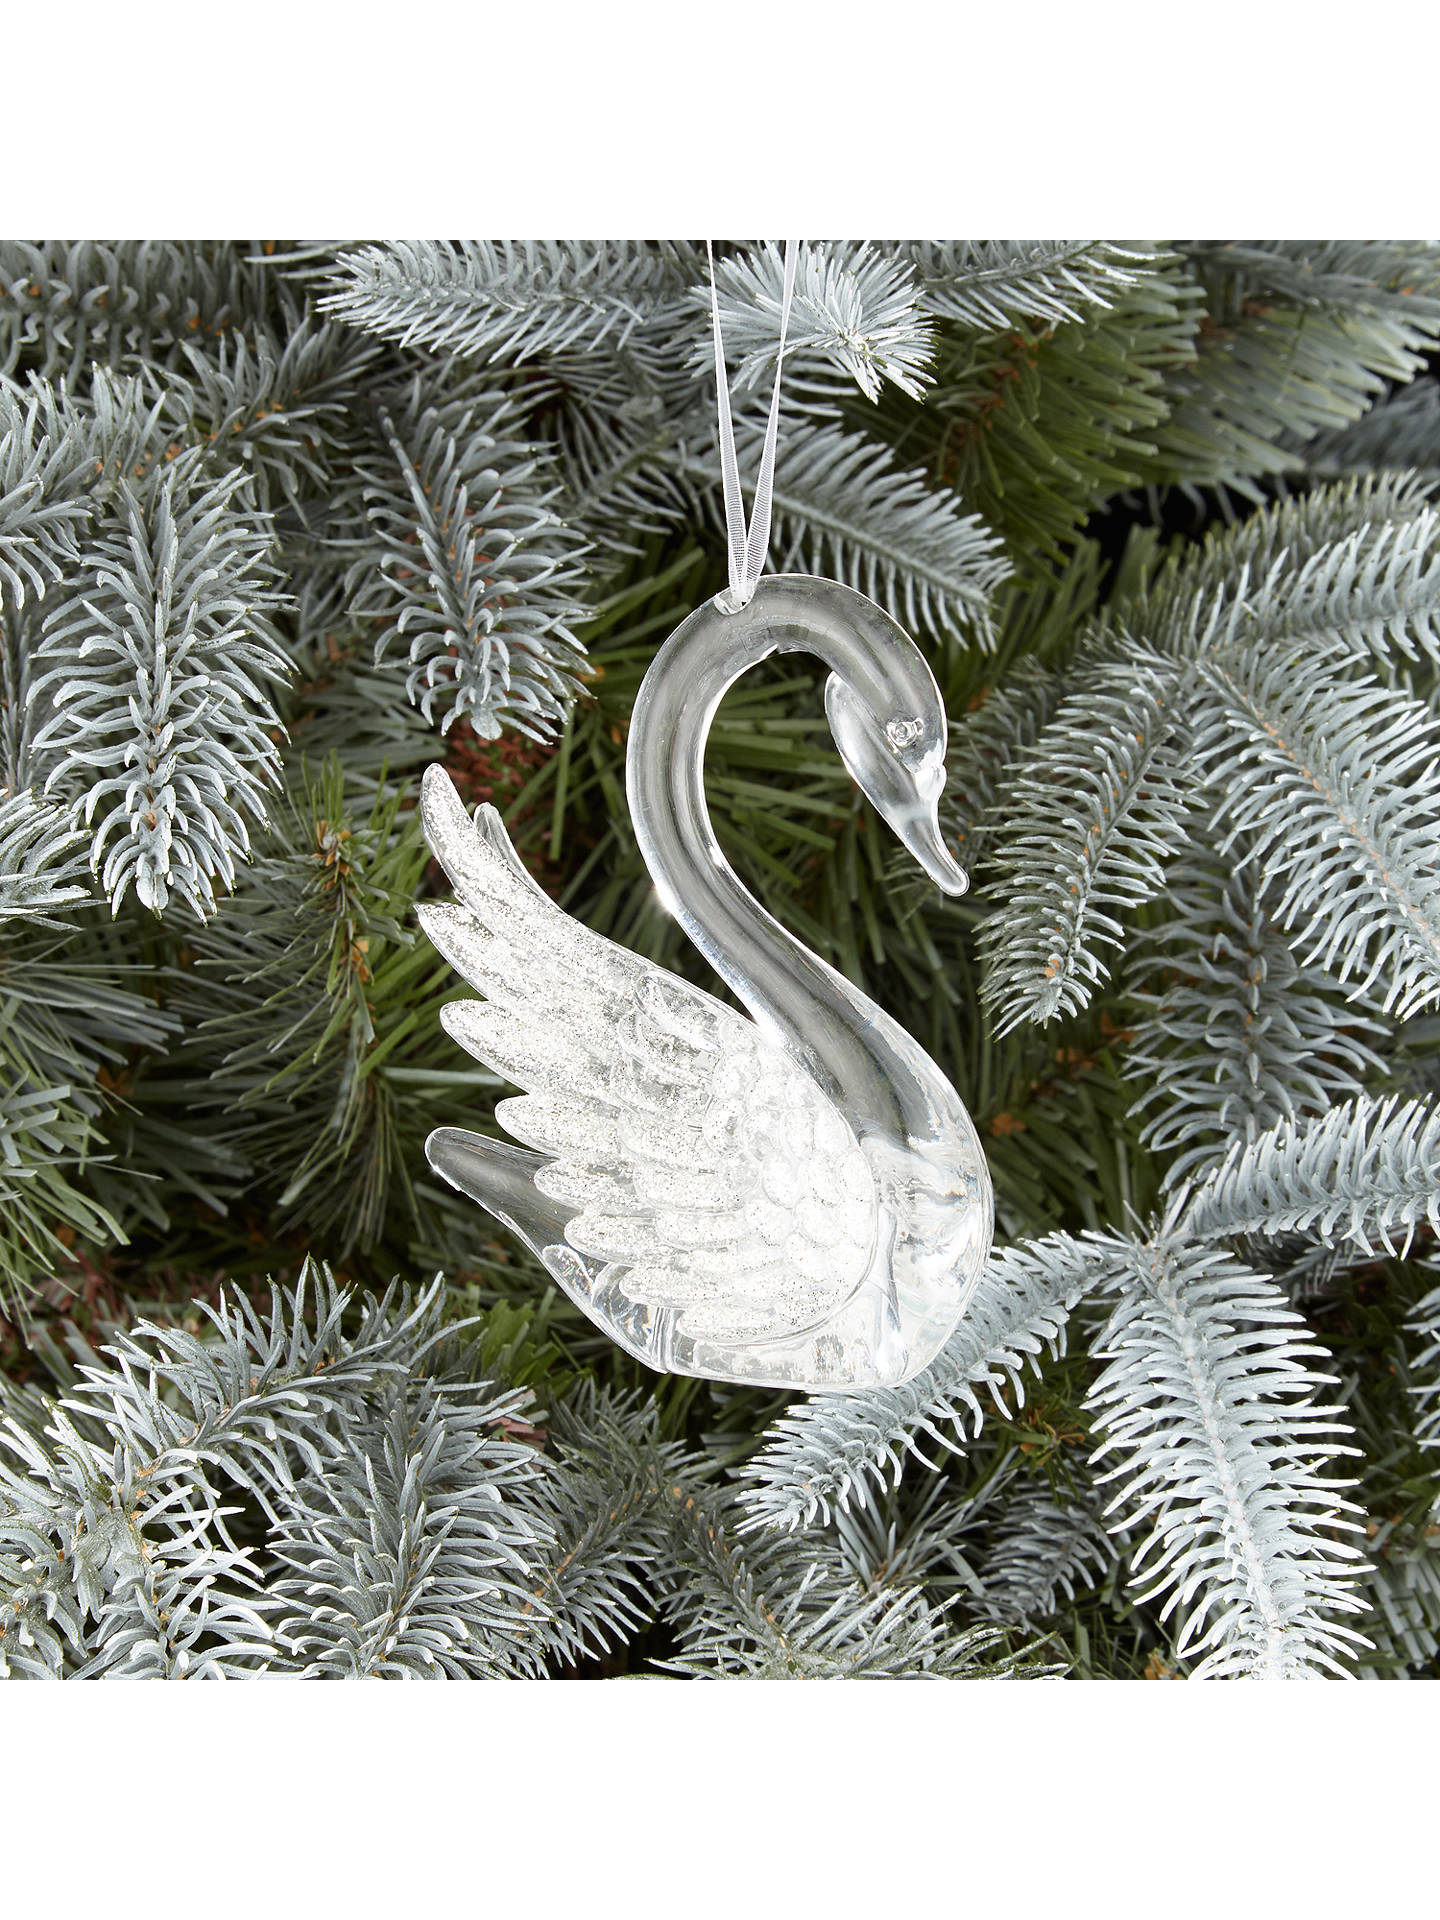 John Lewis Christmas Tree Decorations.John Lewis Winter Palace Acrylic Swan Tree Decoration At